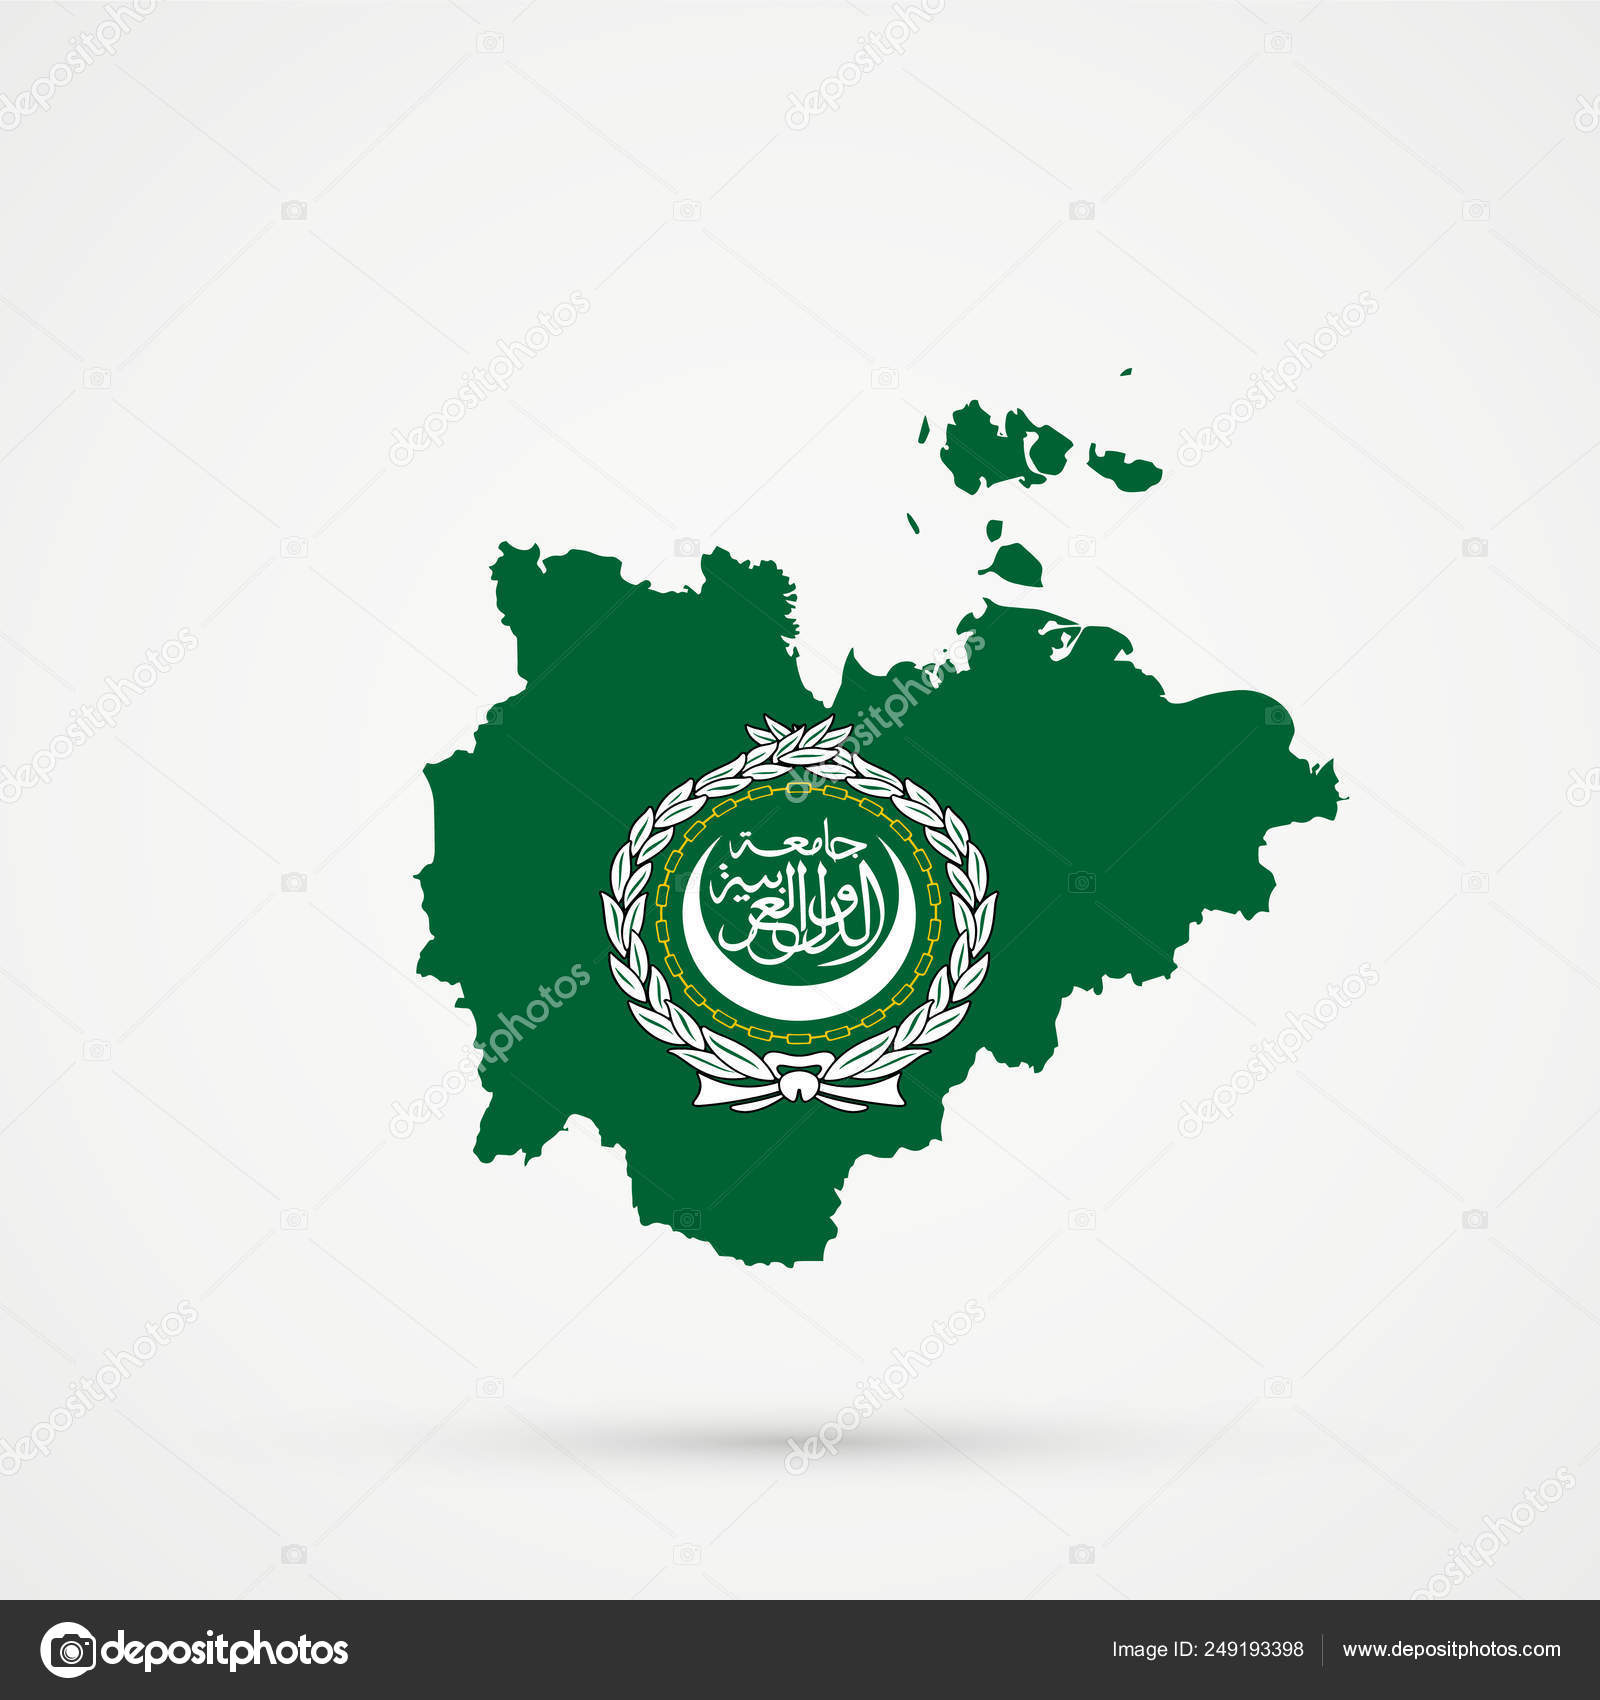 Picture of: Sakha Republic Map In Arab League Flag Colors Editable Vector Stock Vector C L8l 249193398